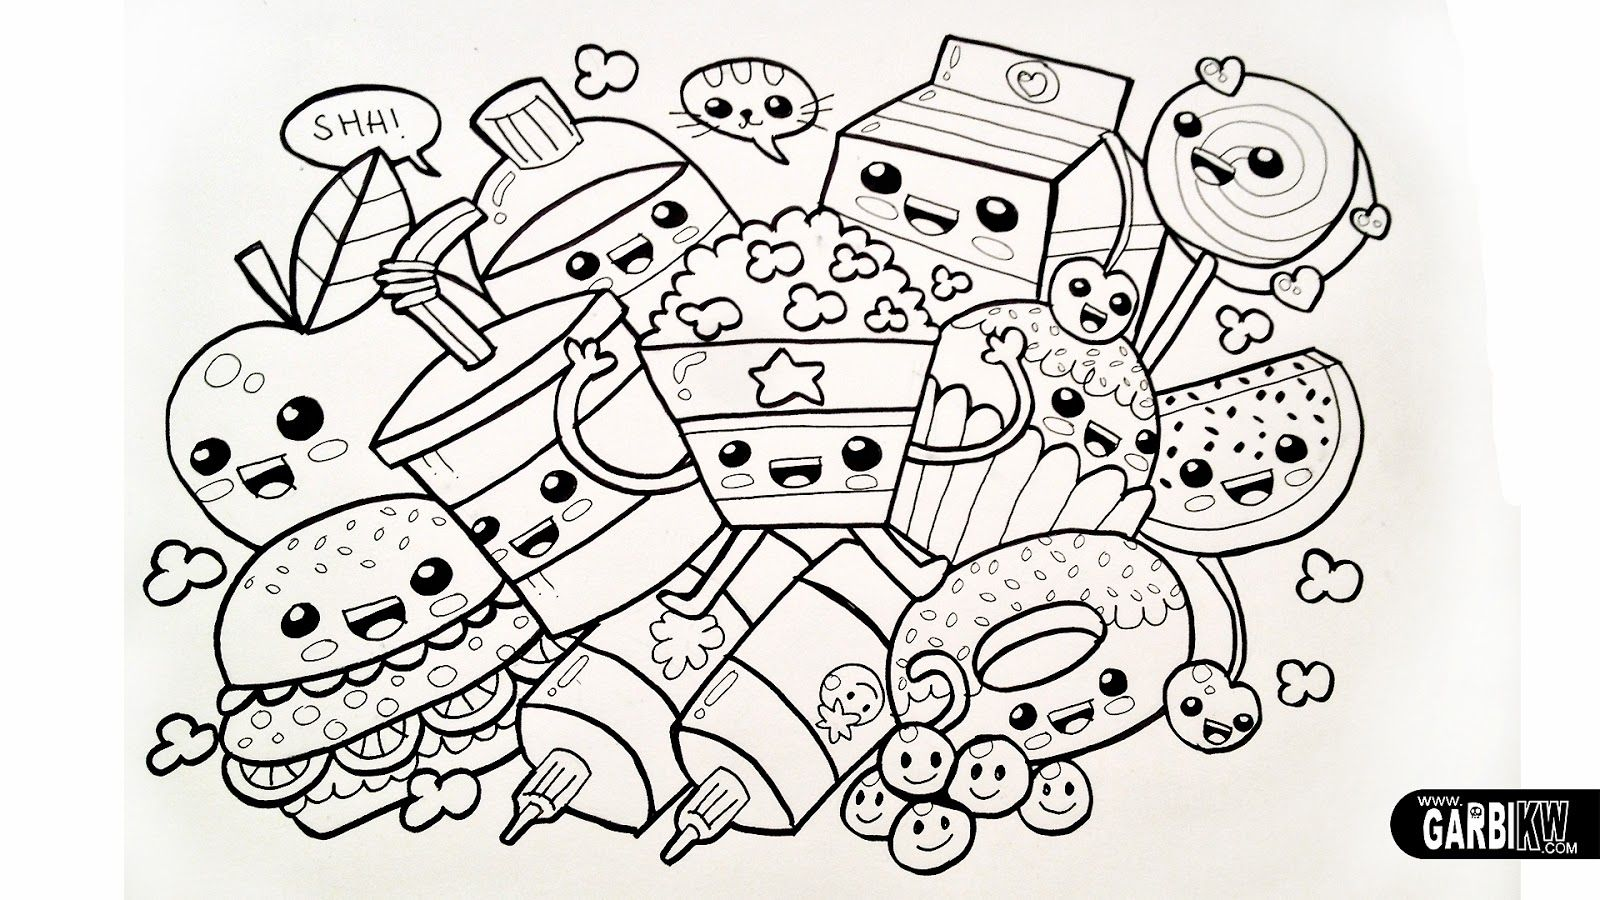 14 343 Jpg 1600 900 Cute Coloring Pages Cartoon Coloring Pages Food Coloring Pages